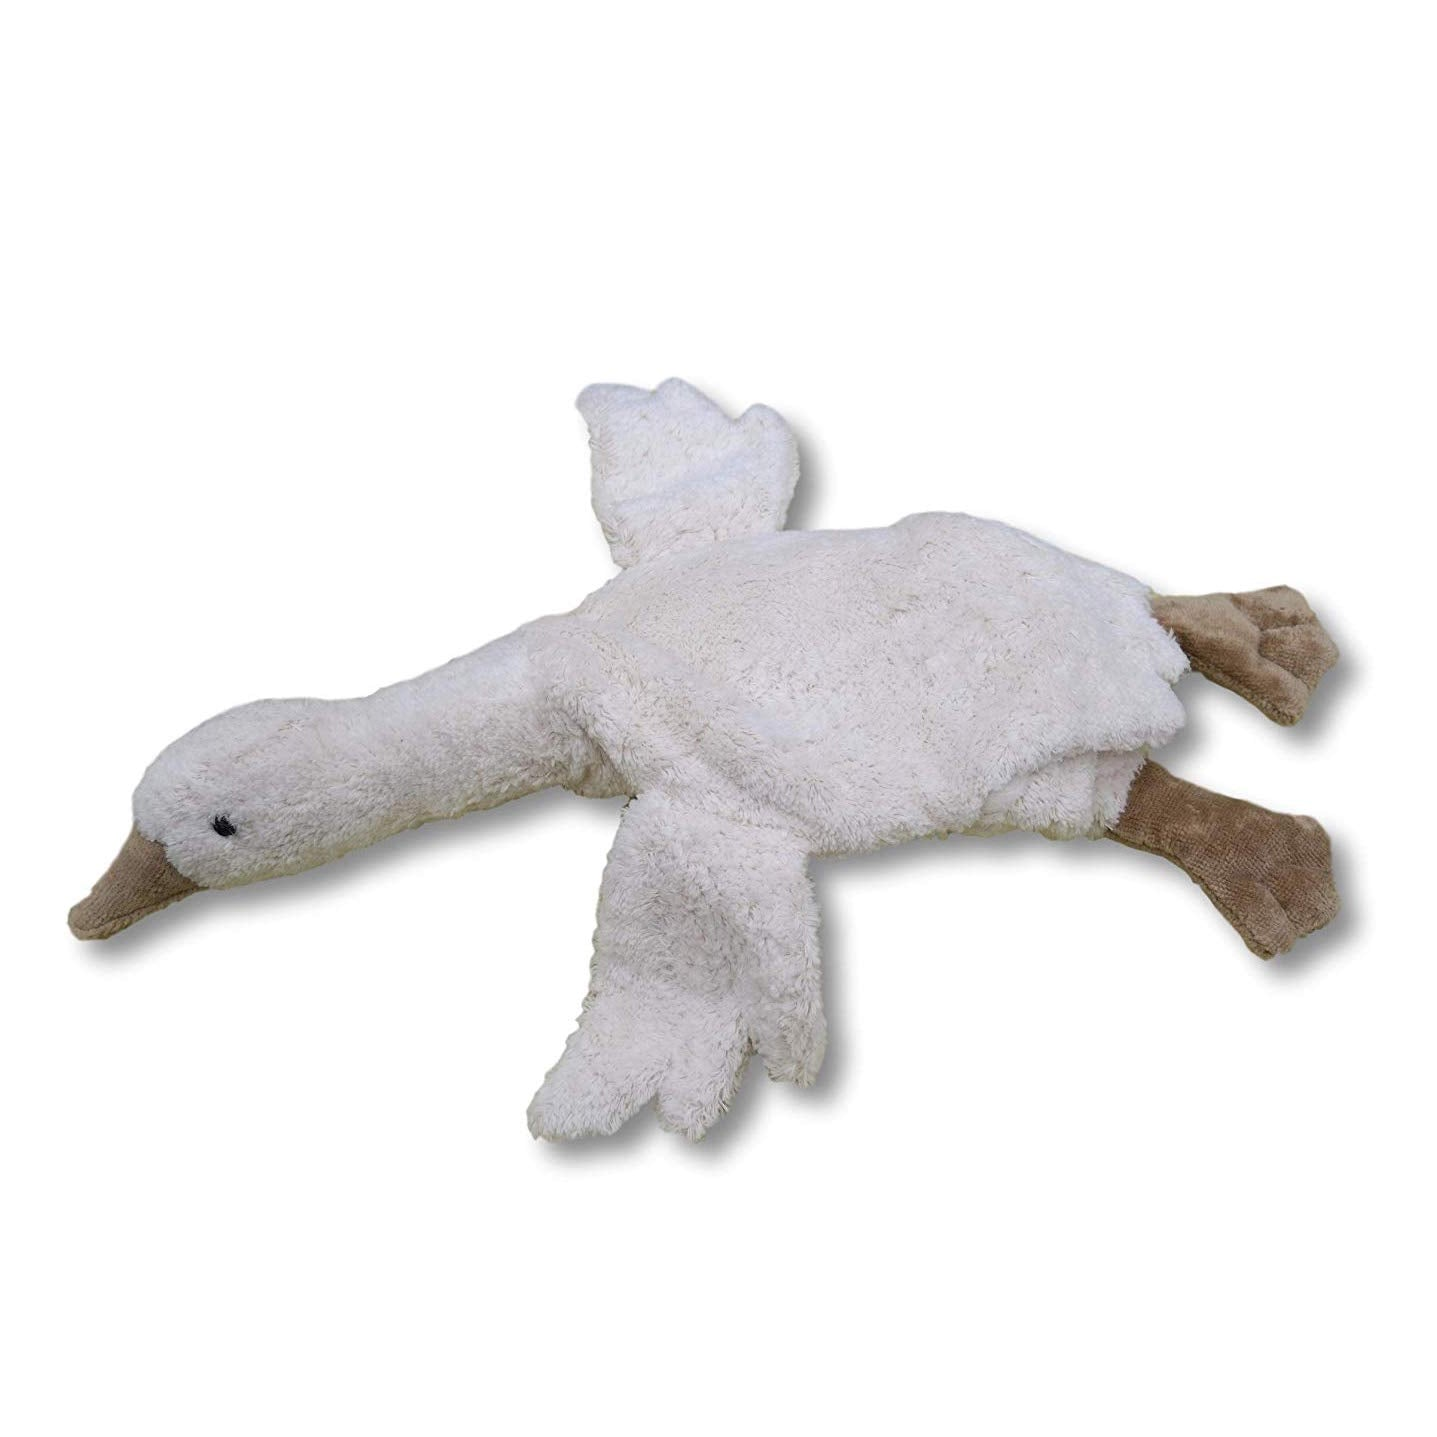 Senger Naturwelt organic cotton cuddly small goose in white - with removable heating pillow